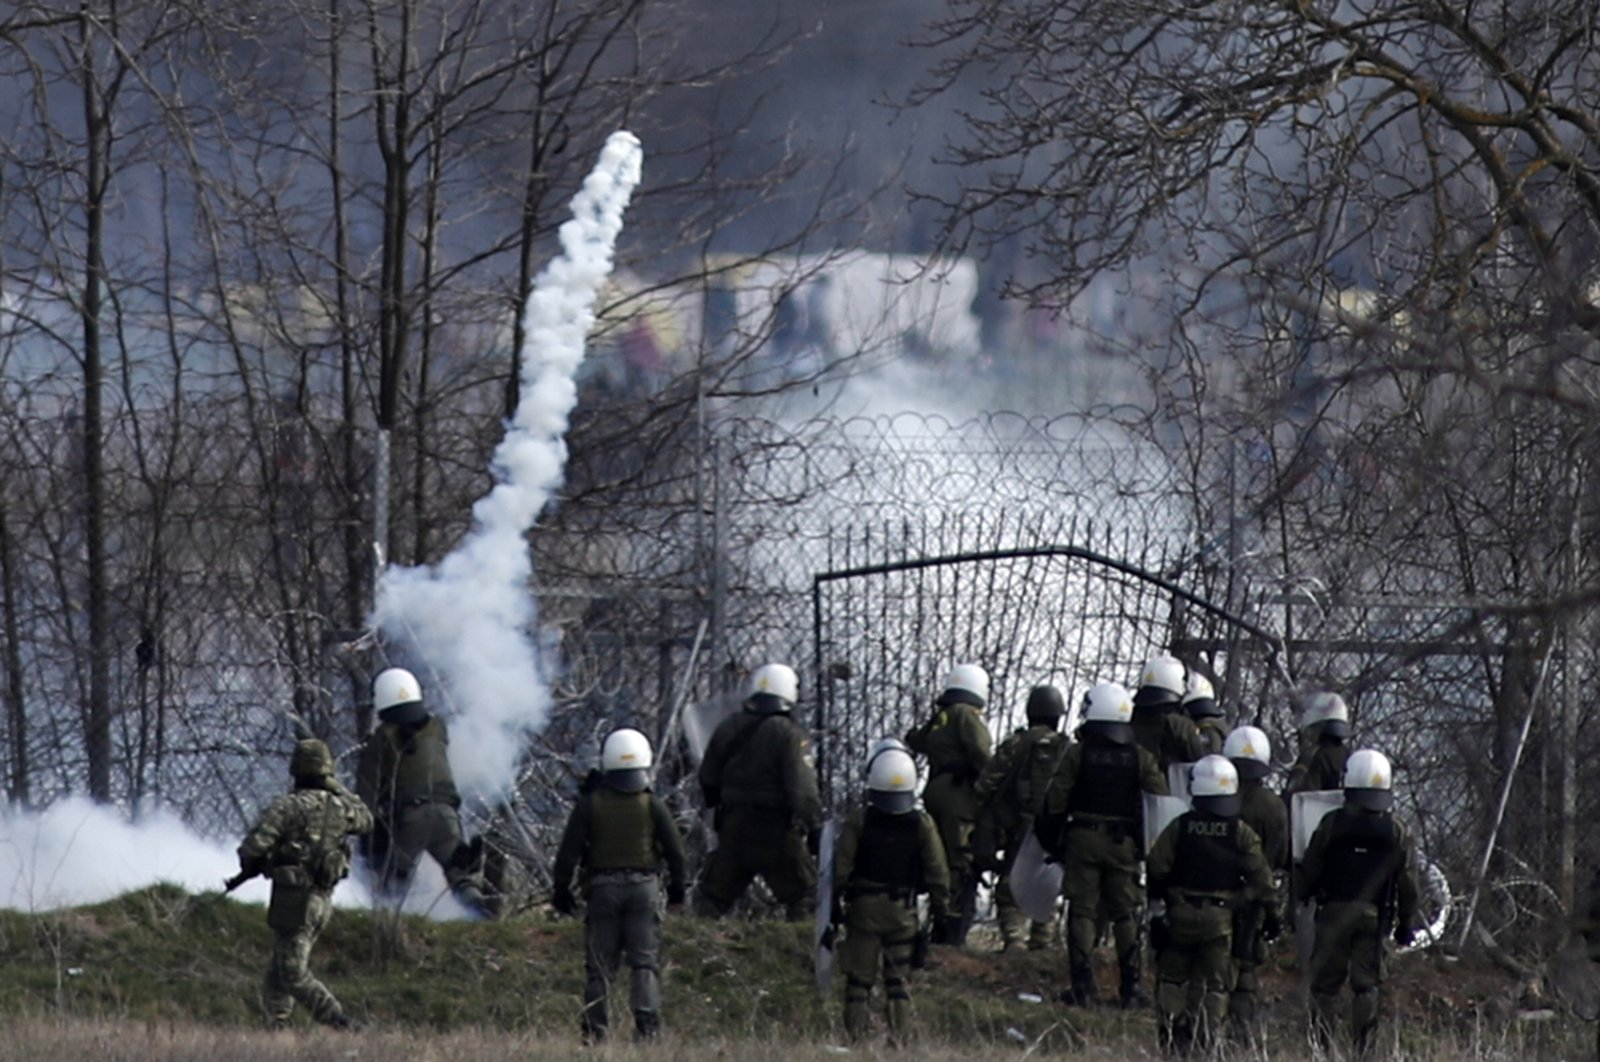 Greek police guard as migrants gather at a border fence on the Turkish side, during clashes at the Greek-Turkish border, Mar. 7, 2020. (AP Photo)